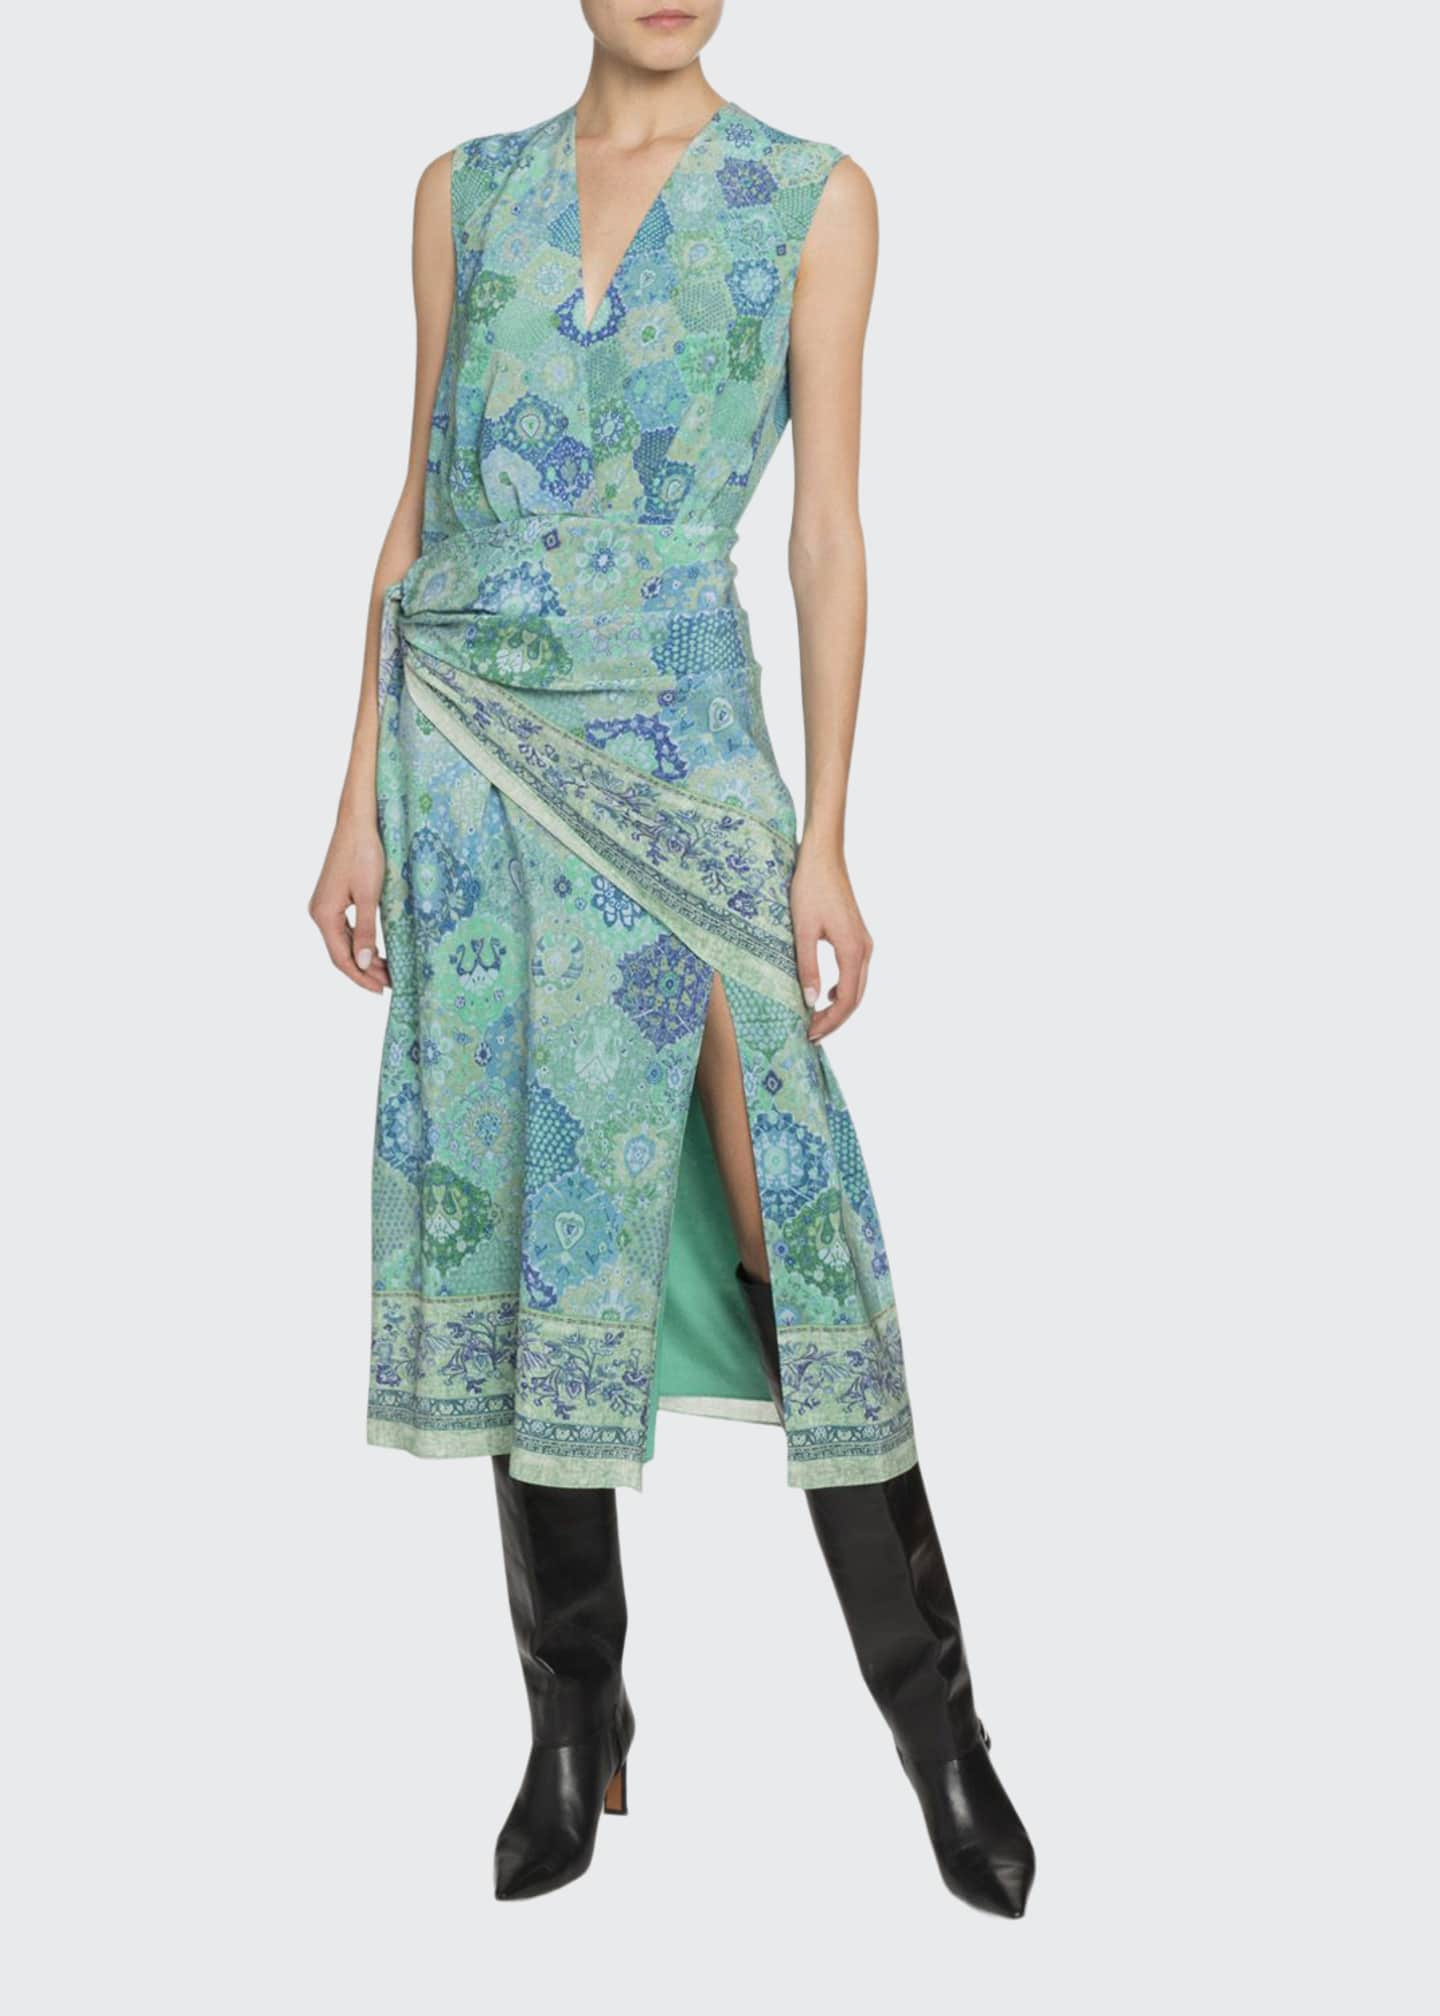 Altuzarra Gathered Bandana Print Silk Midi Dress